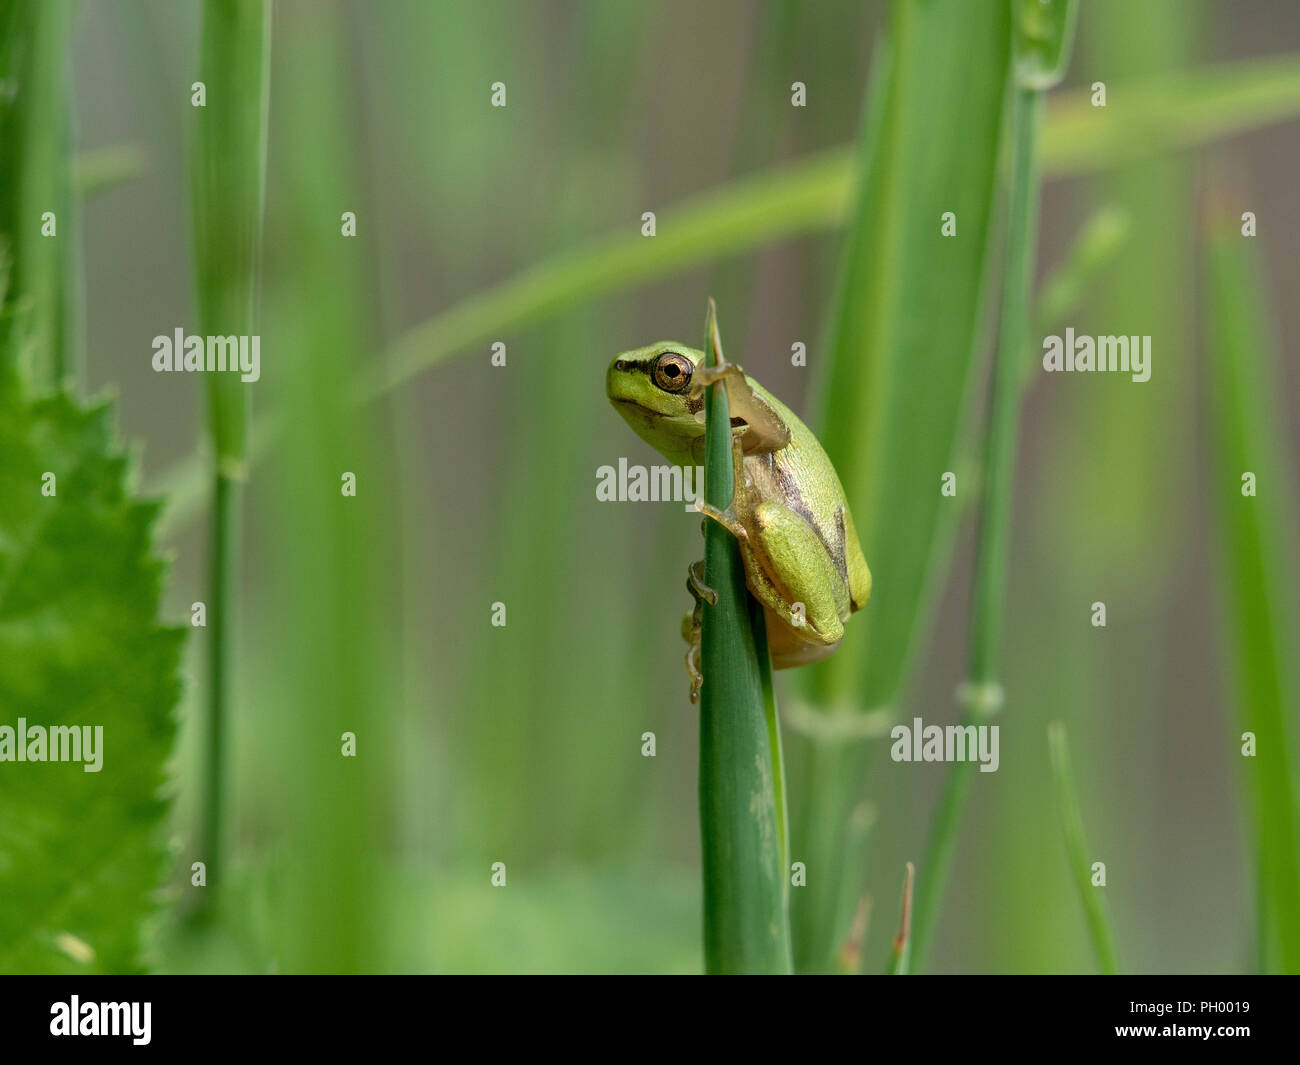 tree frog perched on a grass stalk - Stock Image